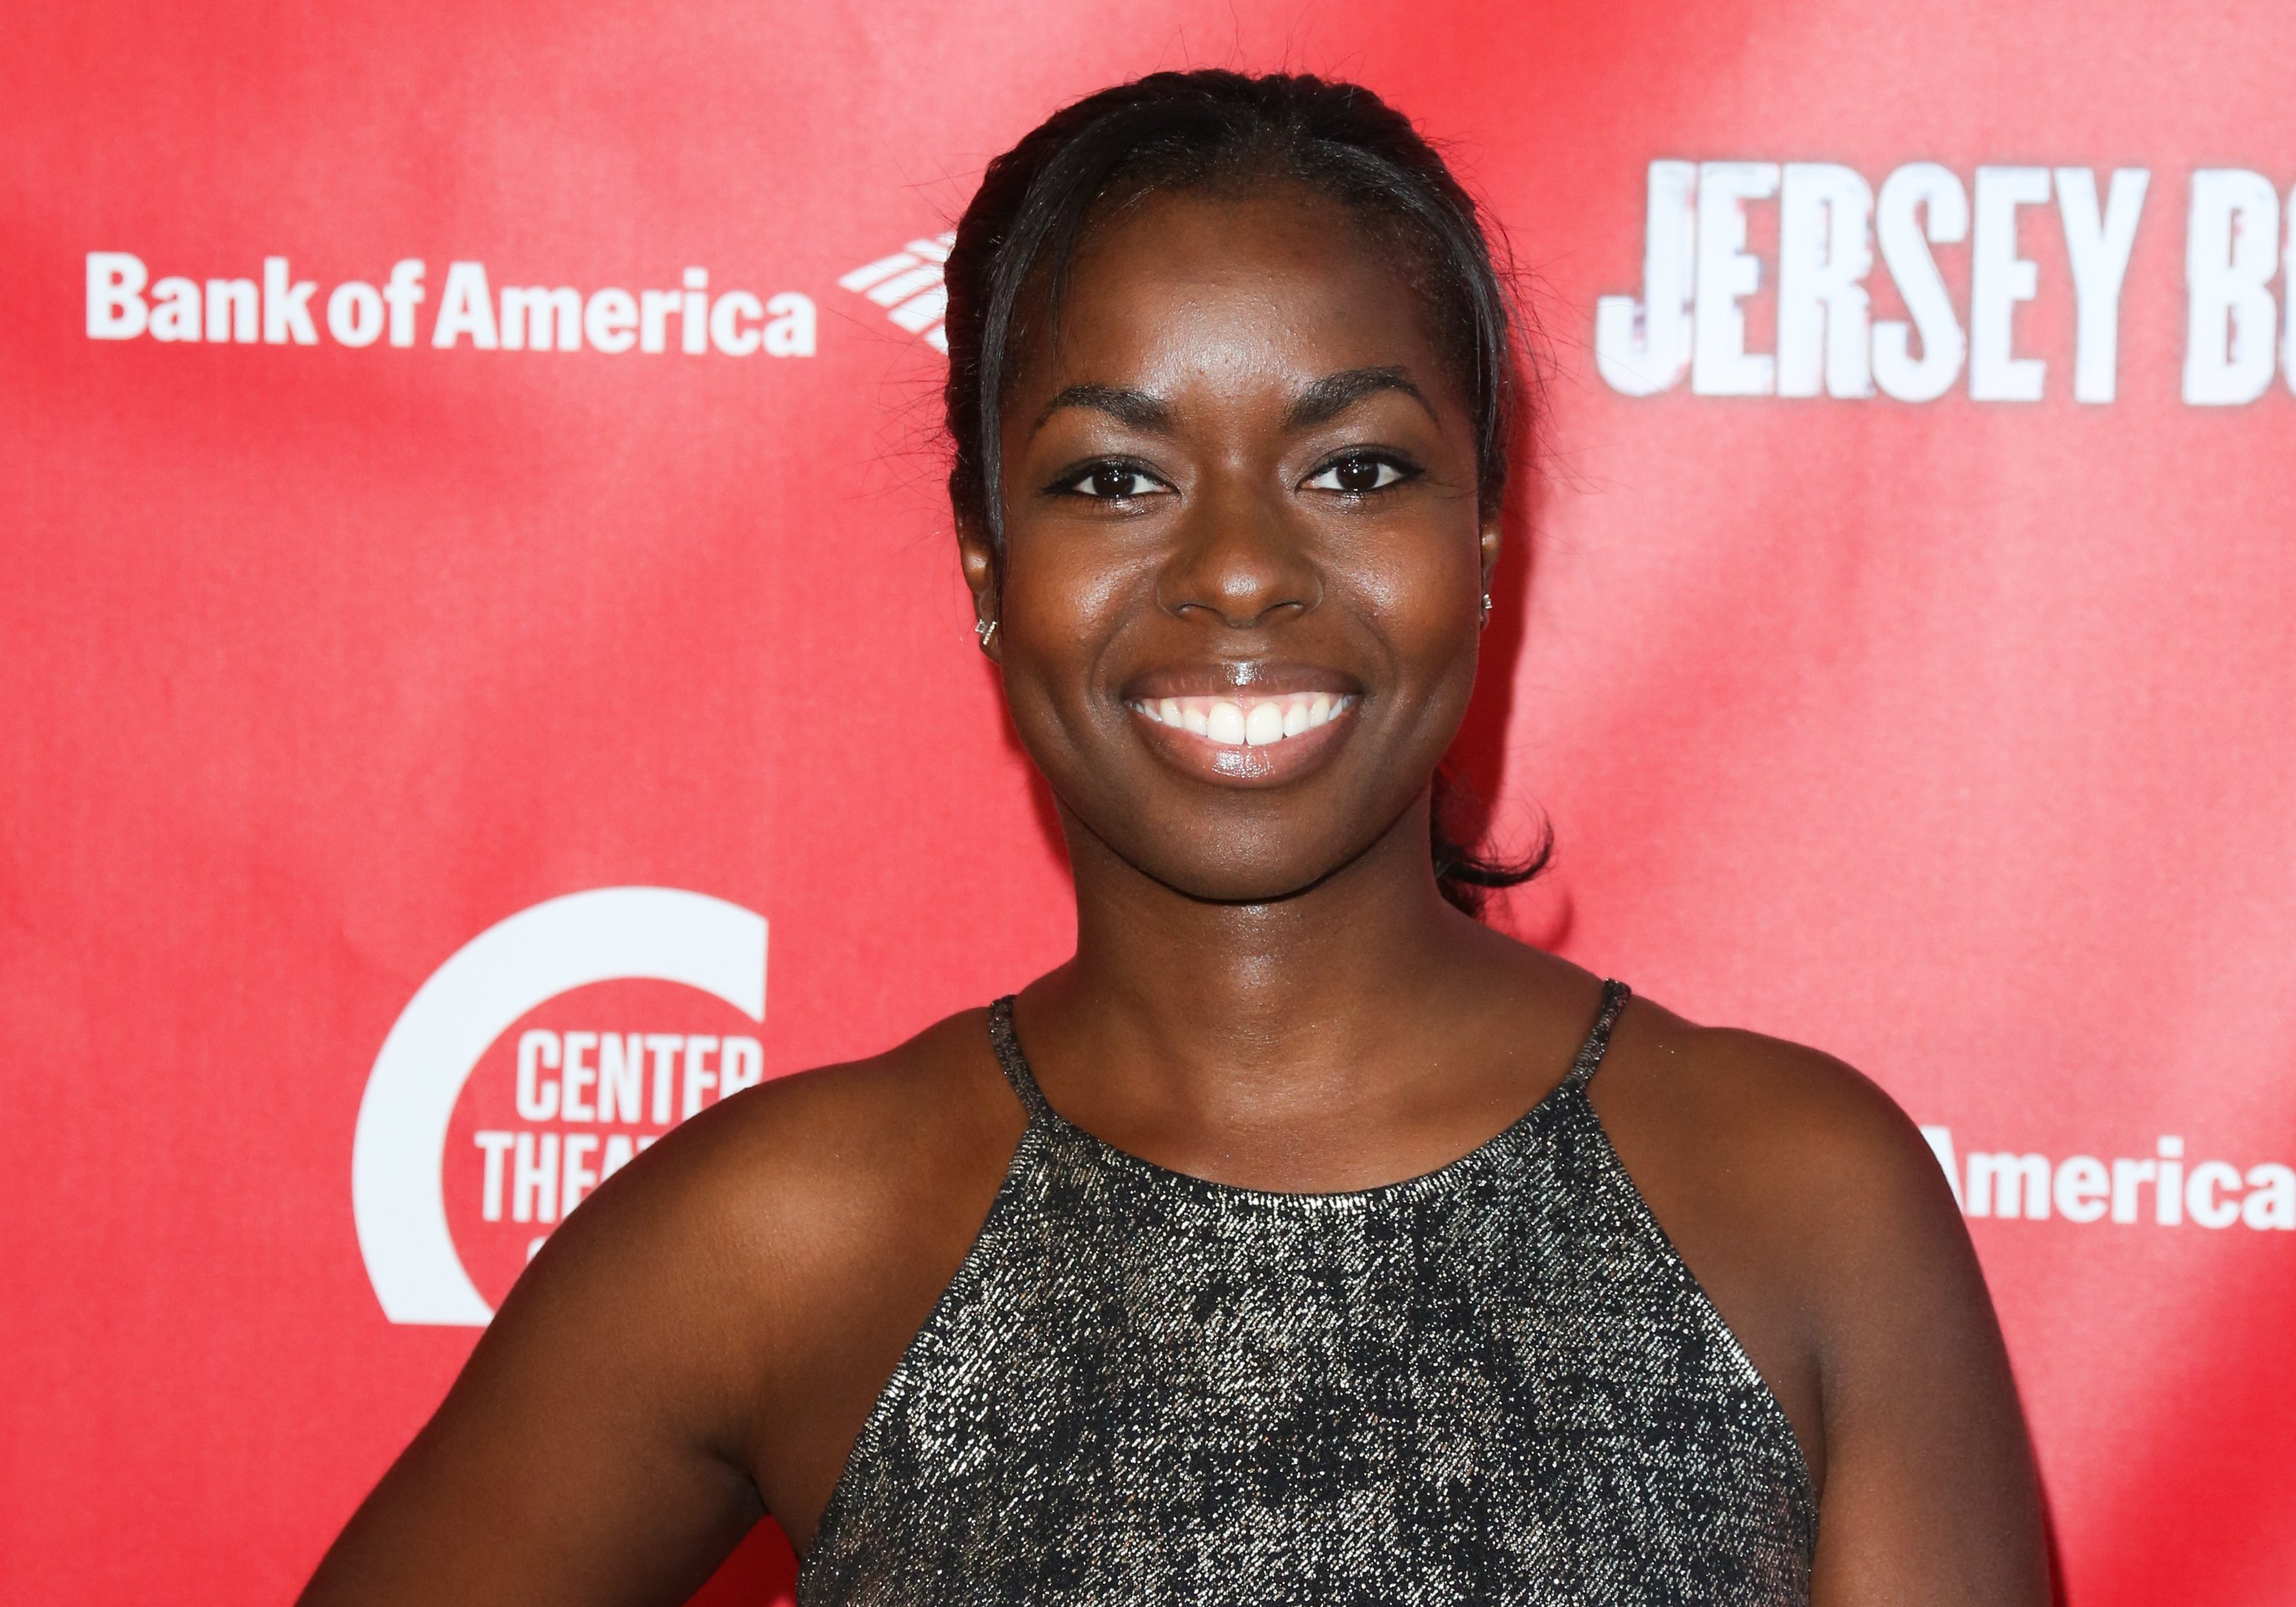 """Camille Winbush pictured at the opening night of """"Jersey Boys"""" at the Ahmanson Theatre on May 18, 2017 in Los Angeles, California.